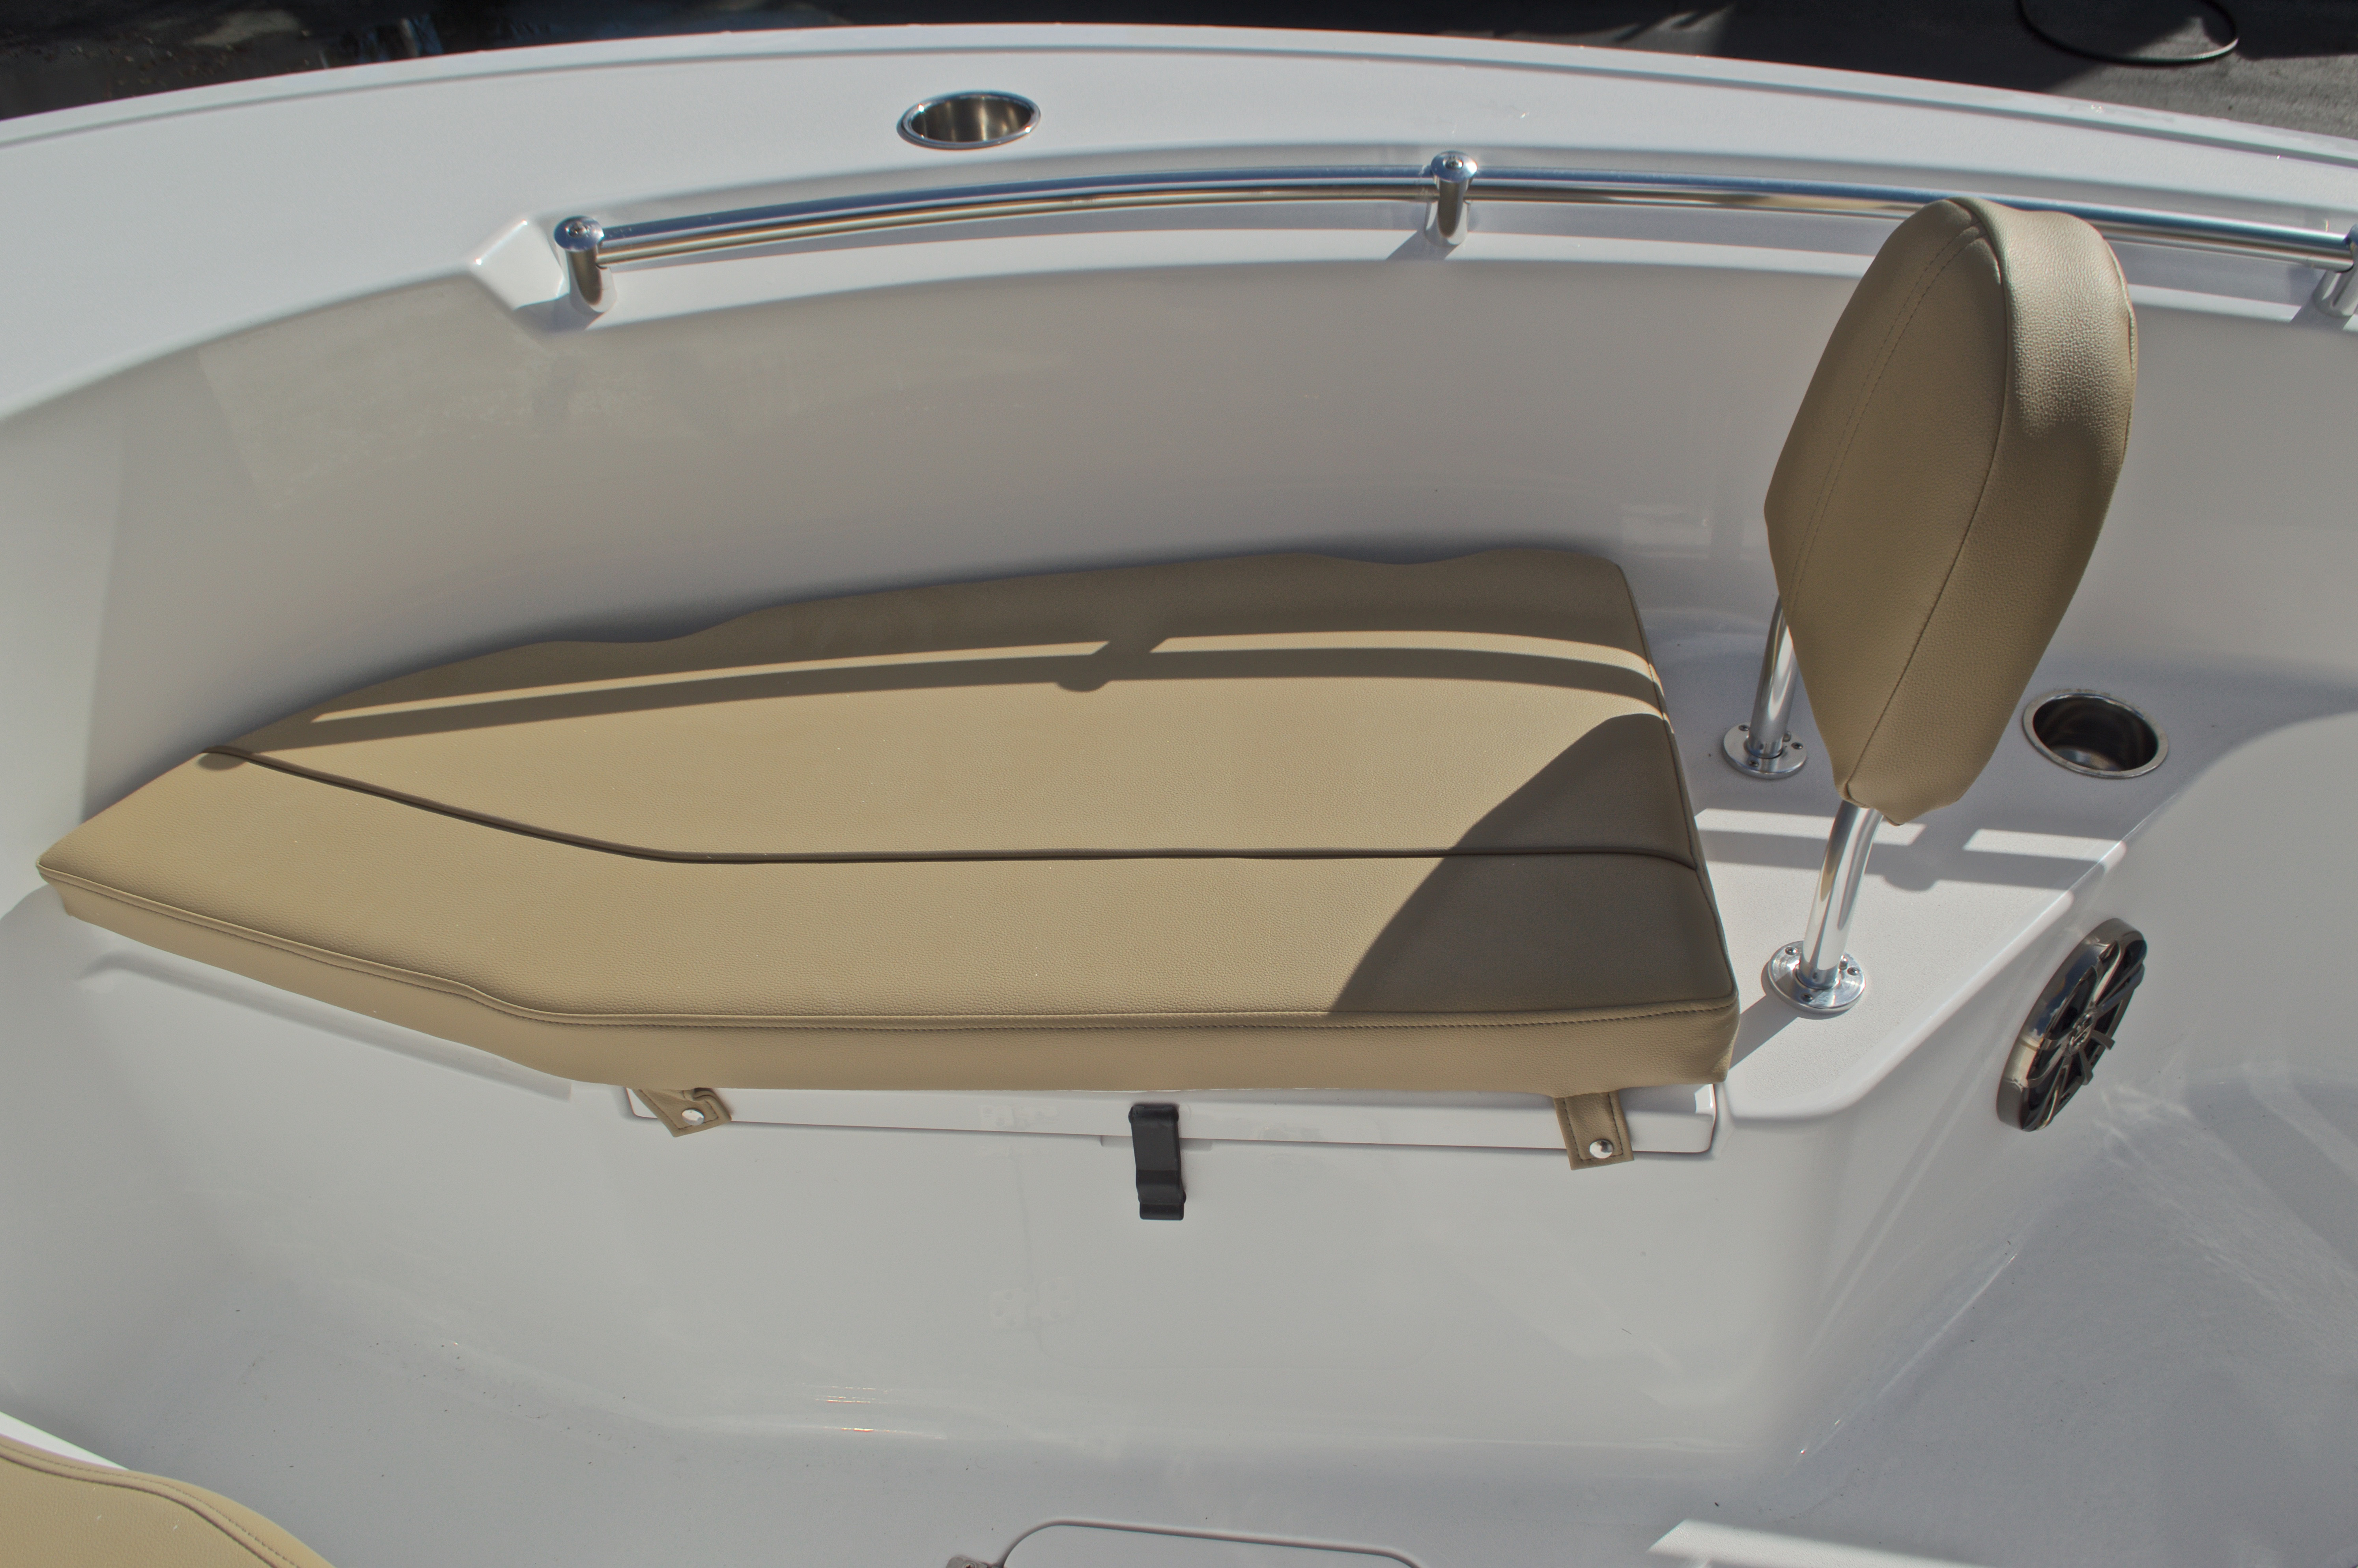 Thumbnail 49 for New 2017 Sportsman Open 212 Center Console boat for sale in West Palm Beach, FL